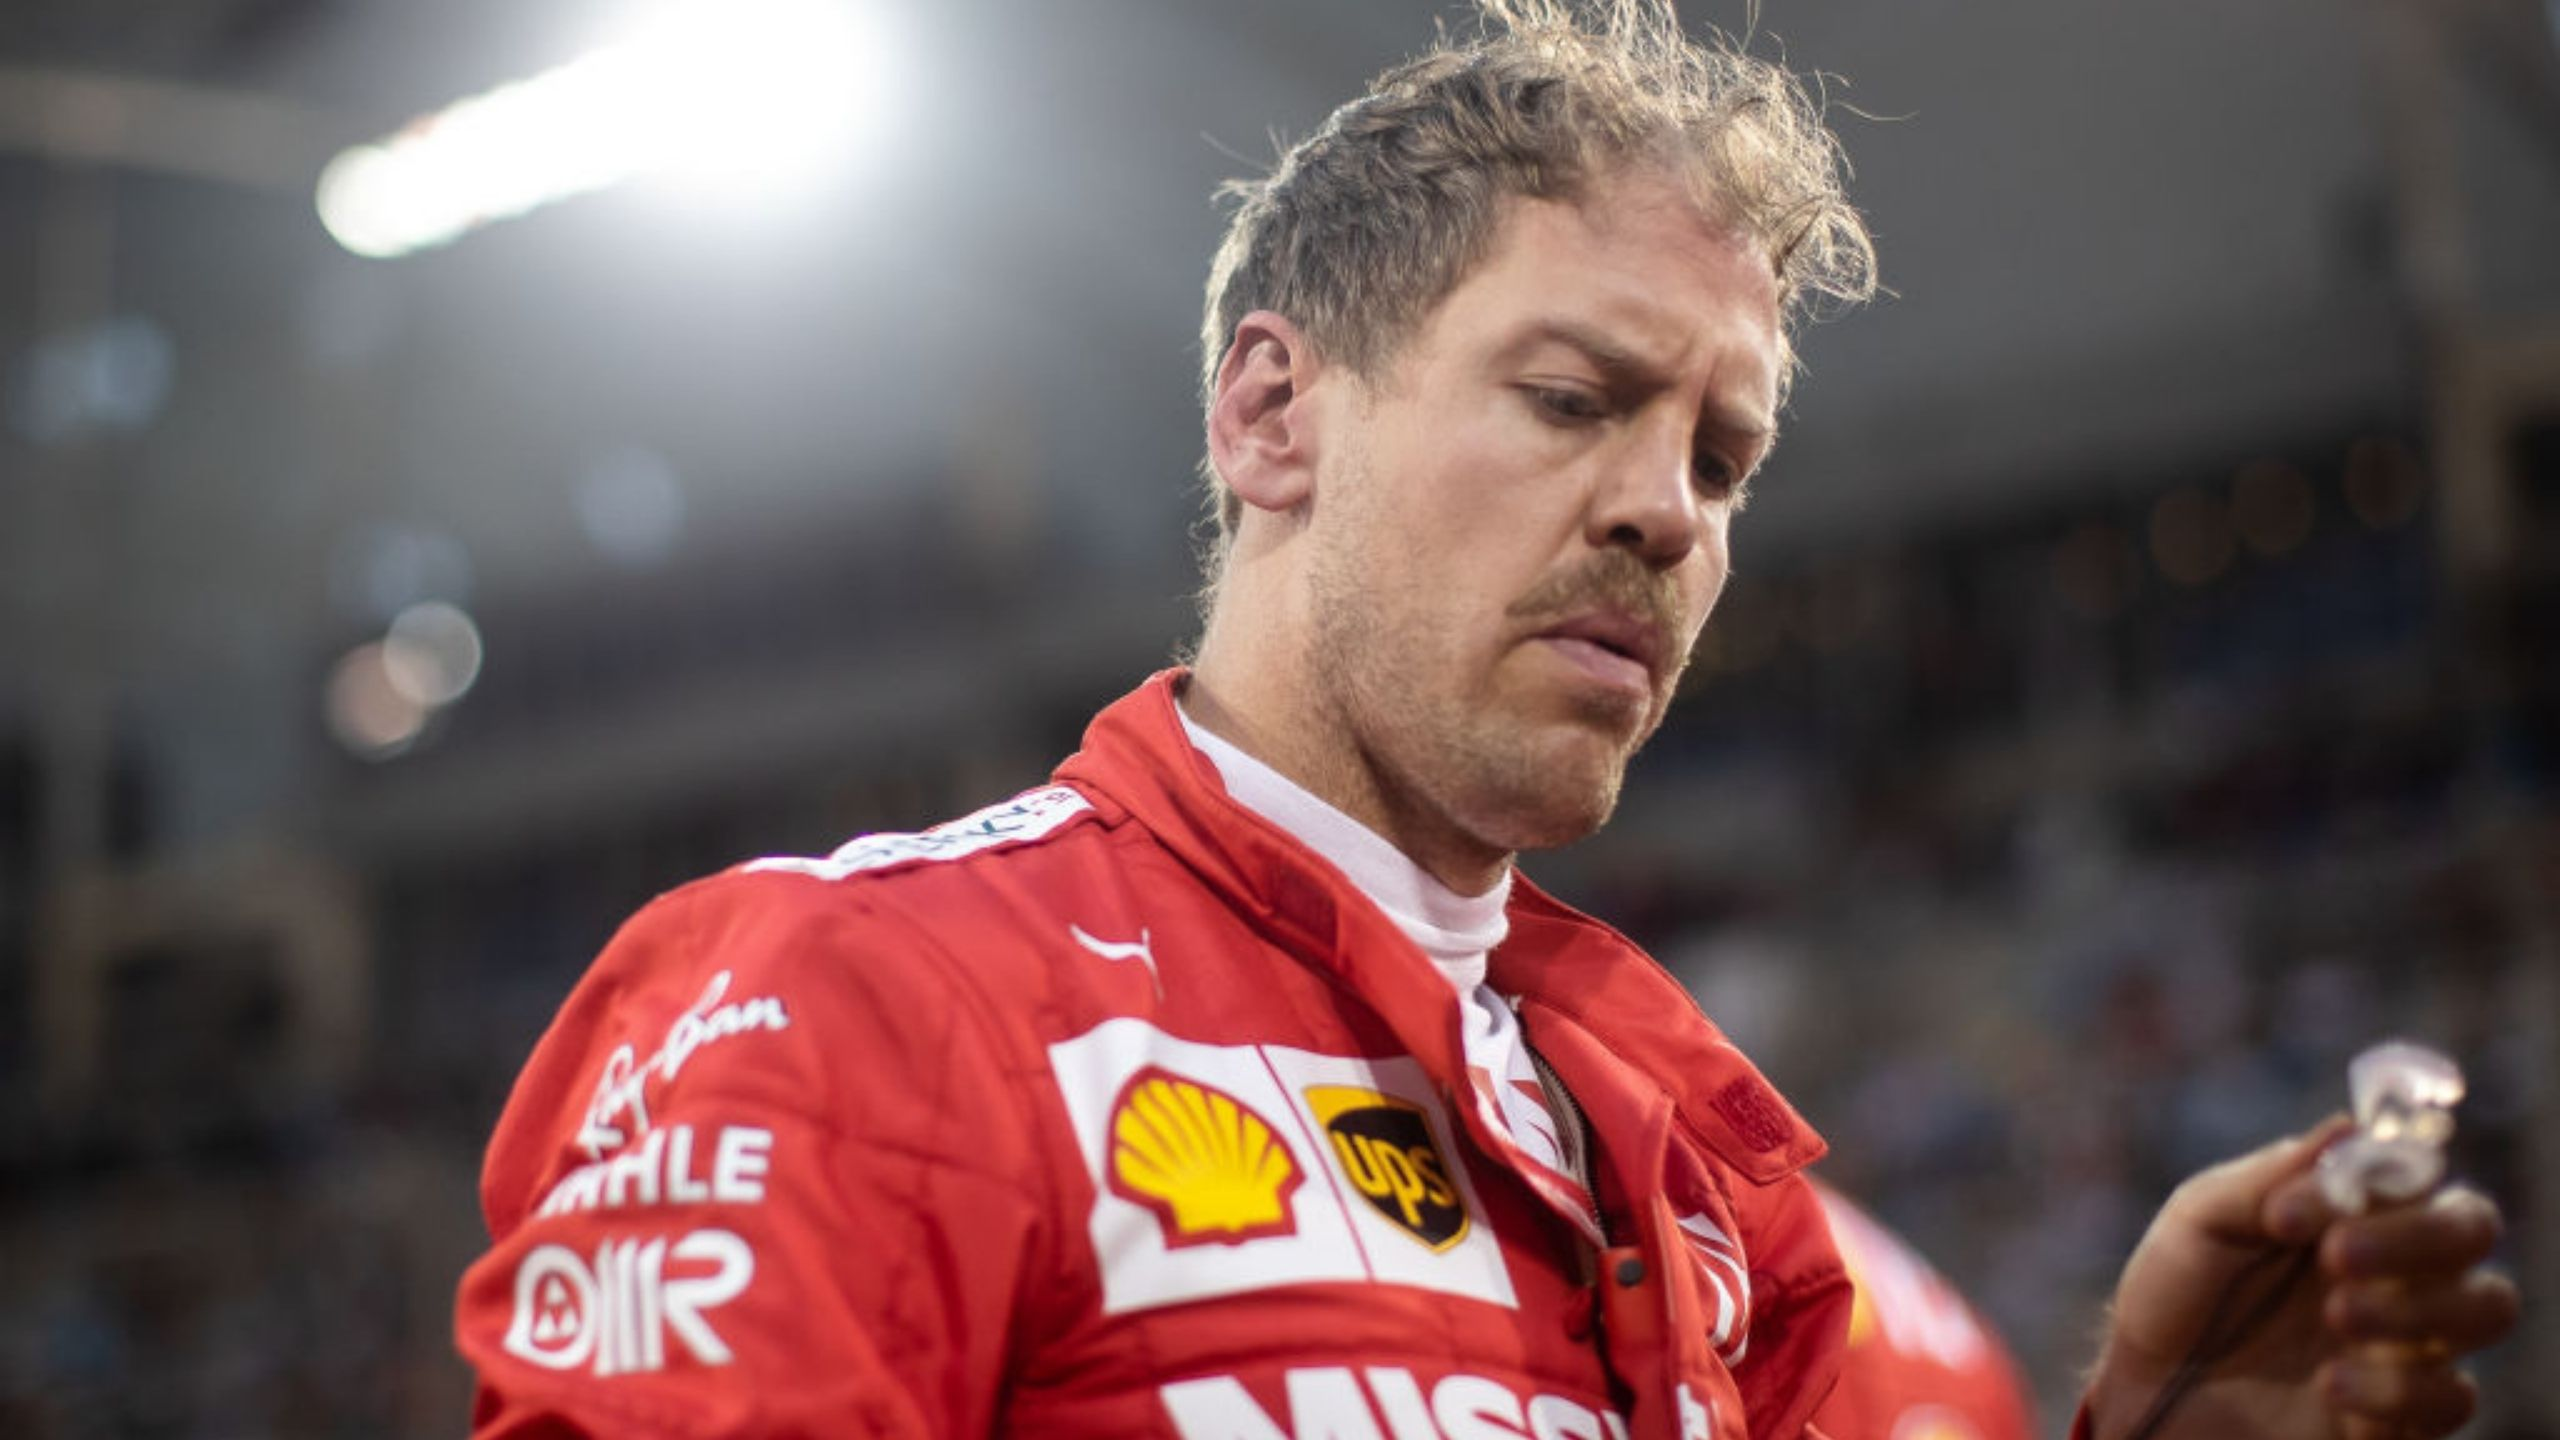 """""""That is the attraction"""" - Ferrari driver Sebastian Vettel reveals what makes him stand out in the rain"""